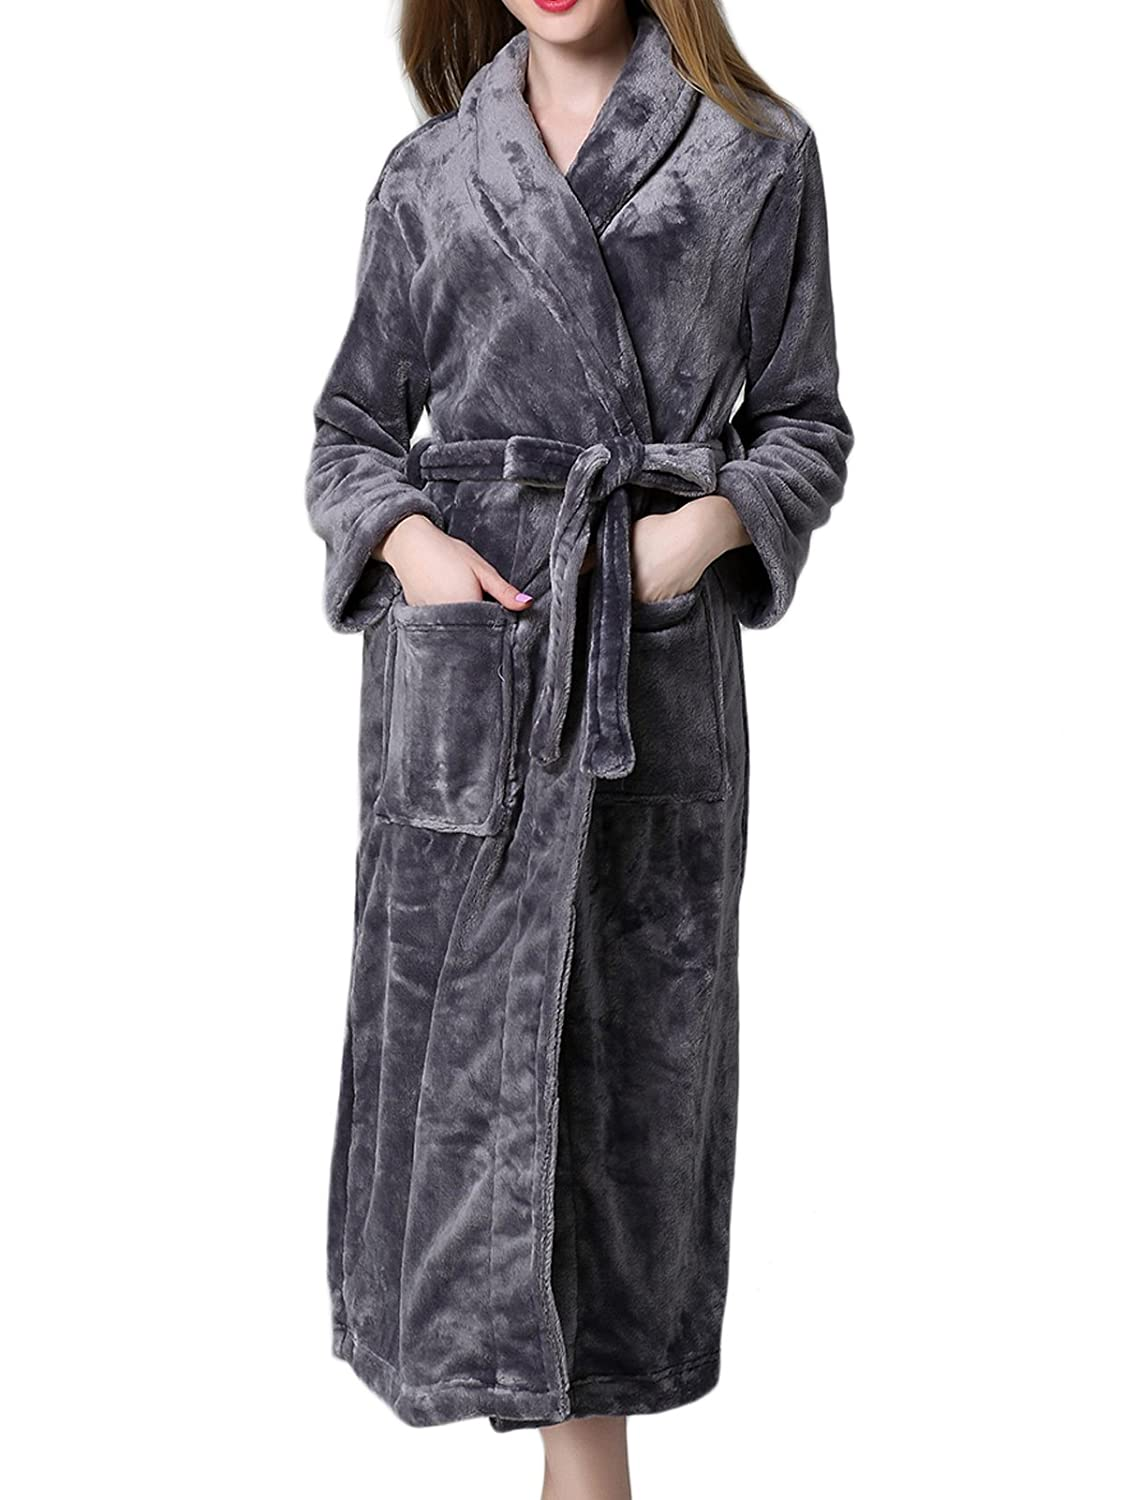 2664cadfef HENCY Women s Plush Soft Warm Fleece Bathrobe Robe Long Terry Cotton Bath  Robe - Toweling with Belt at Amazon Women s Clothing store